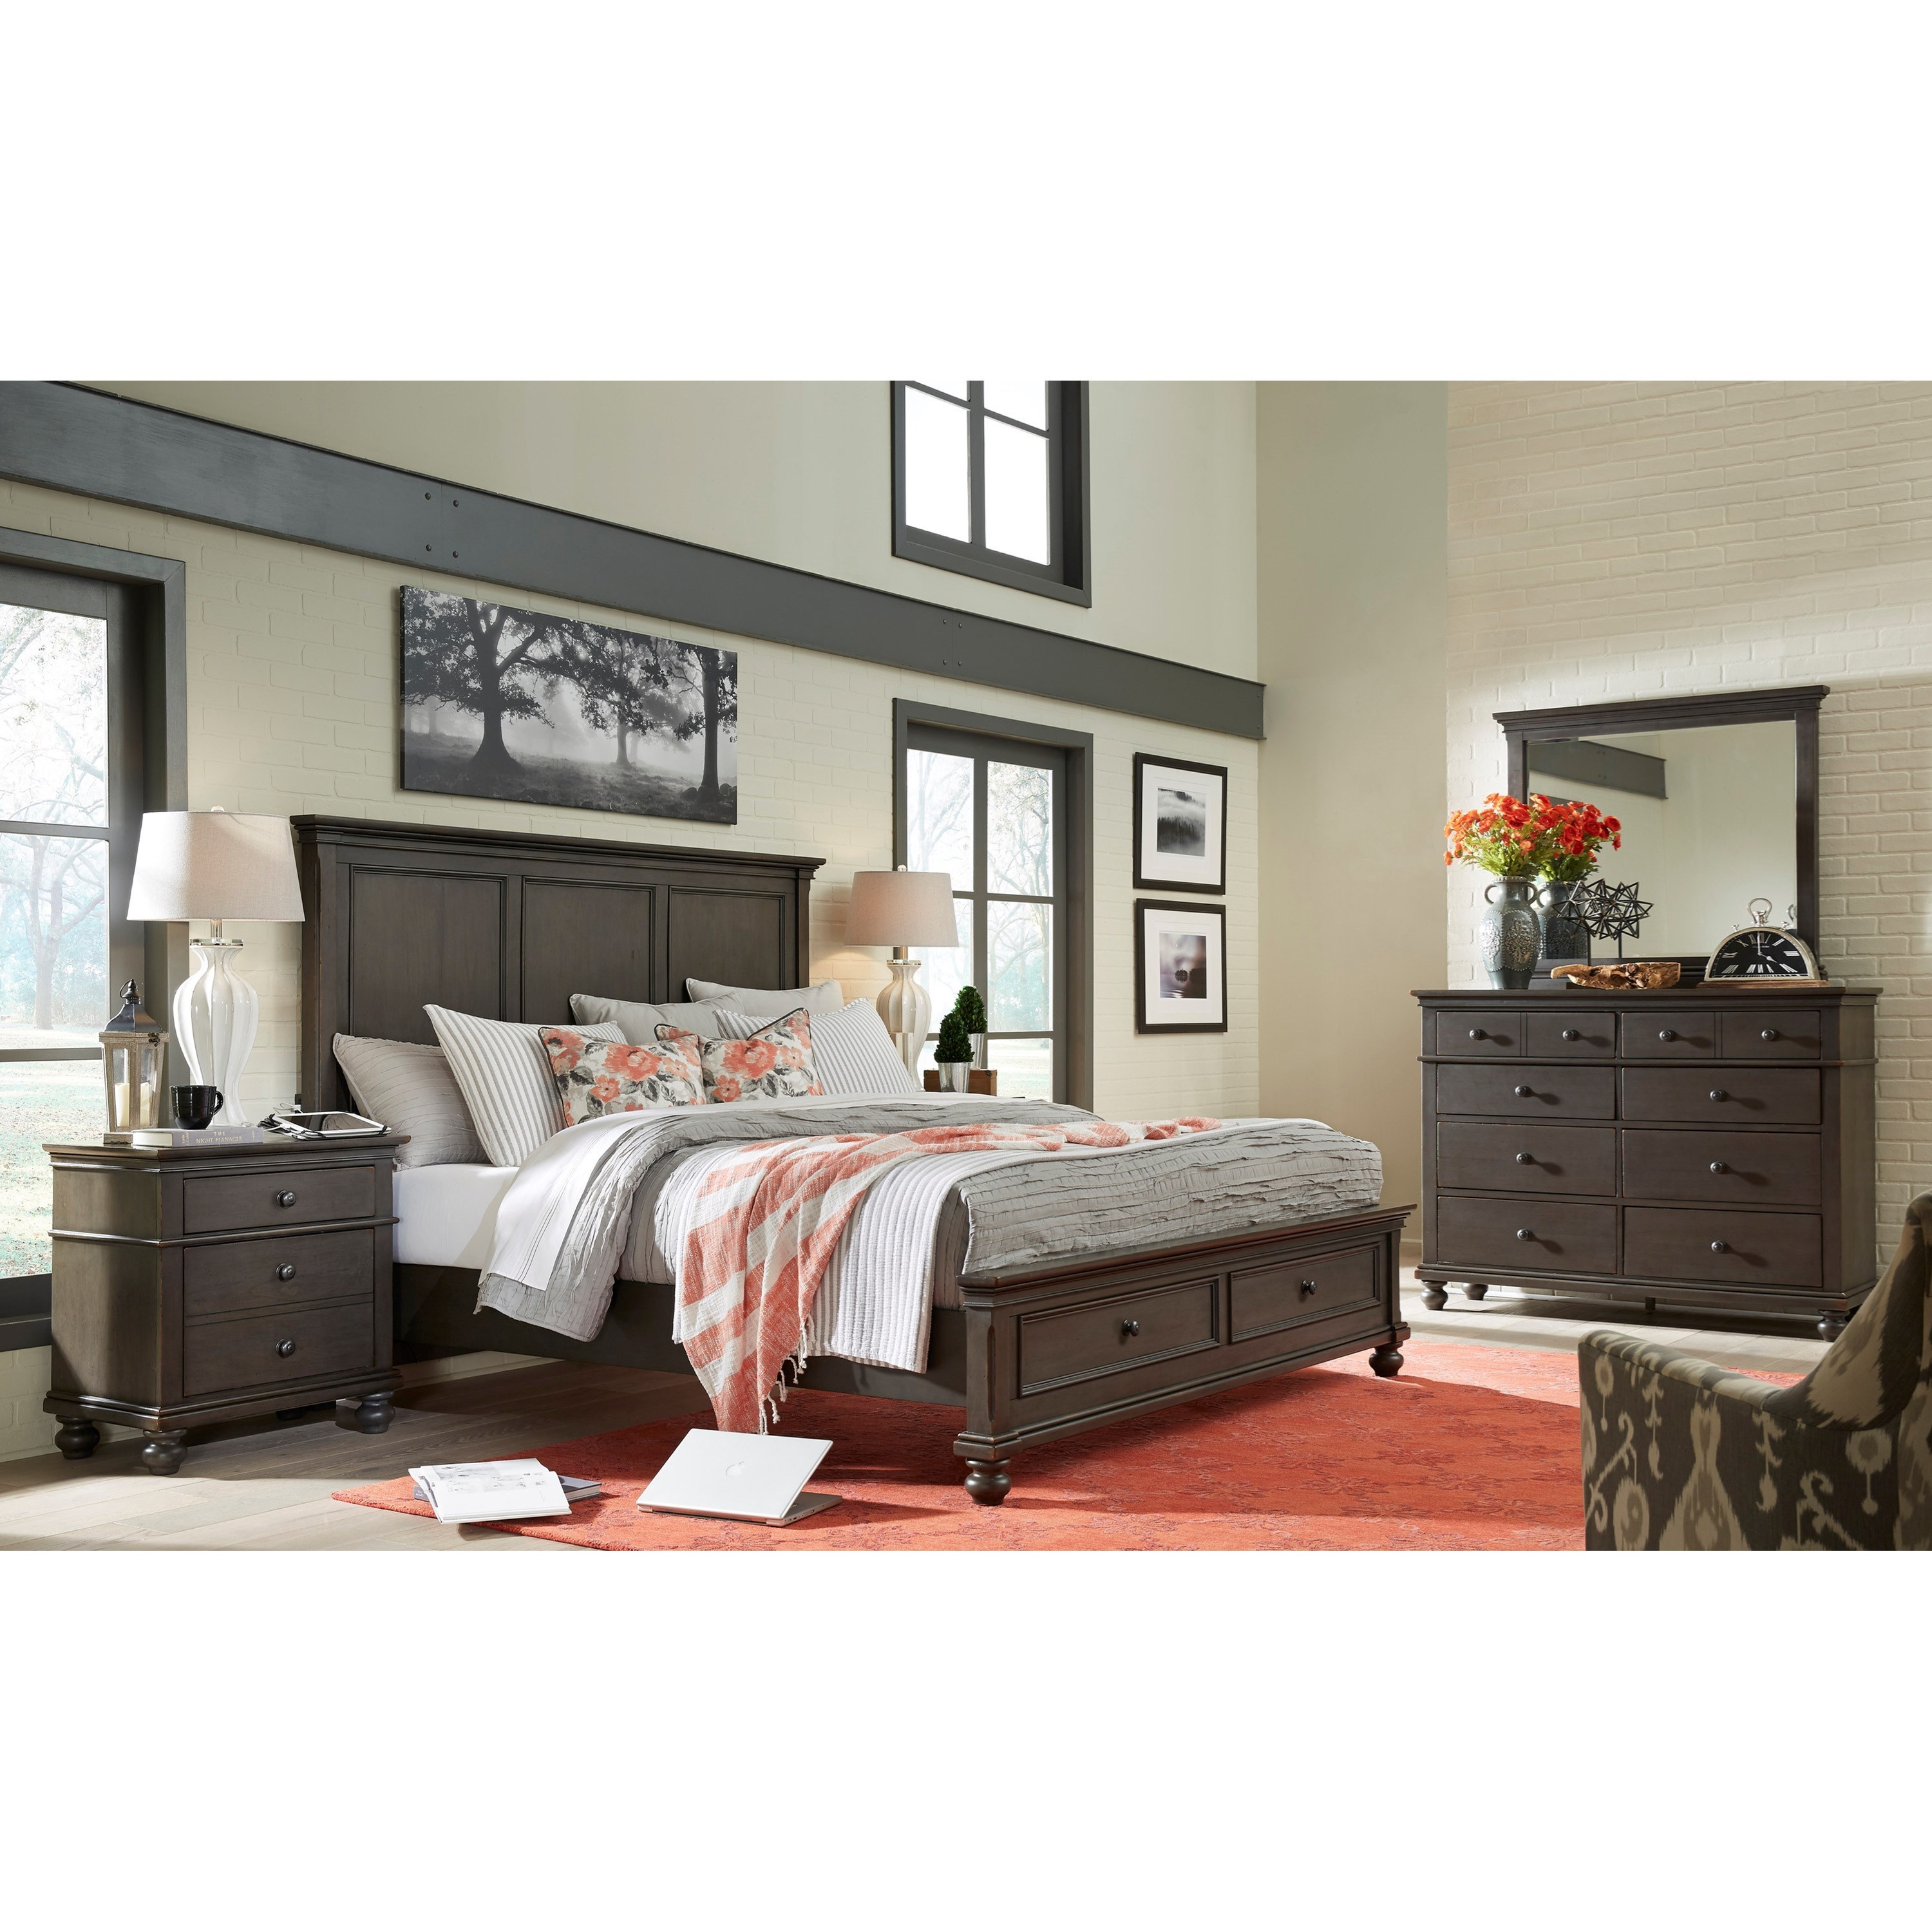 Oxford Queen Bedroom Group by Aspenhome at Baer's Furniture